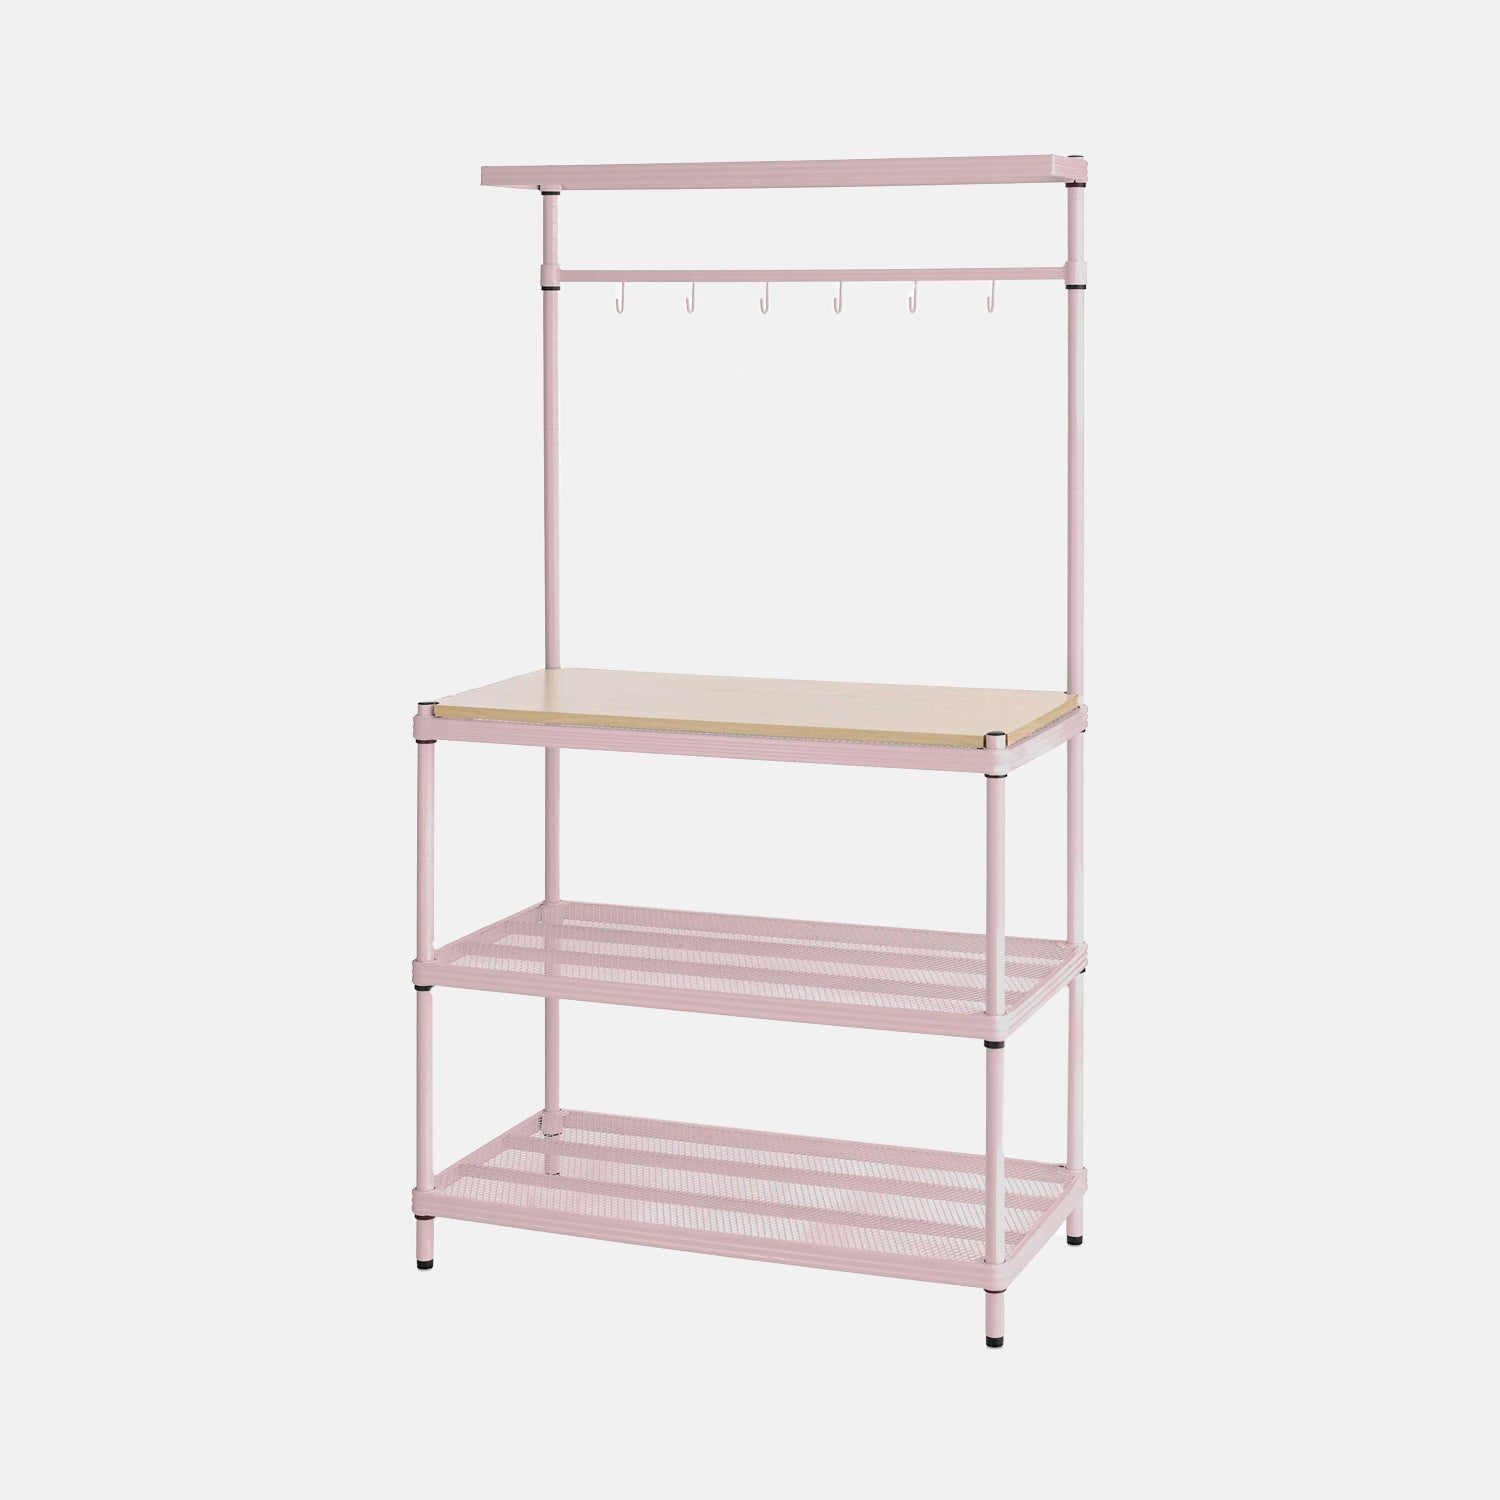 extra sturdy storage unit with shelving and hooks - pink | storage